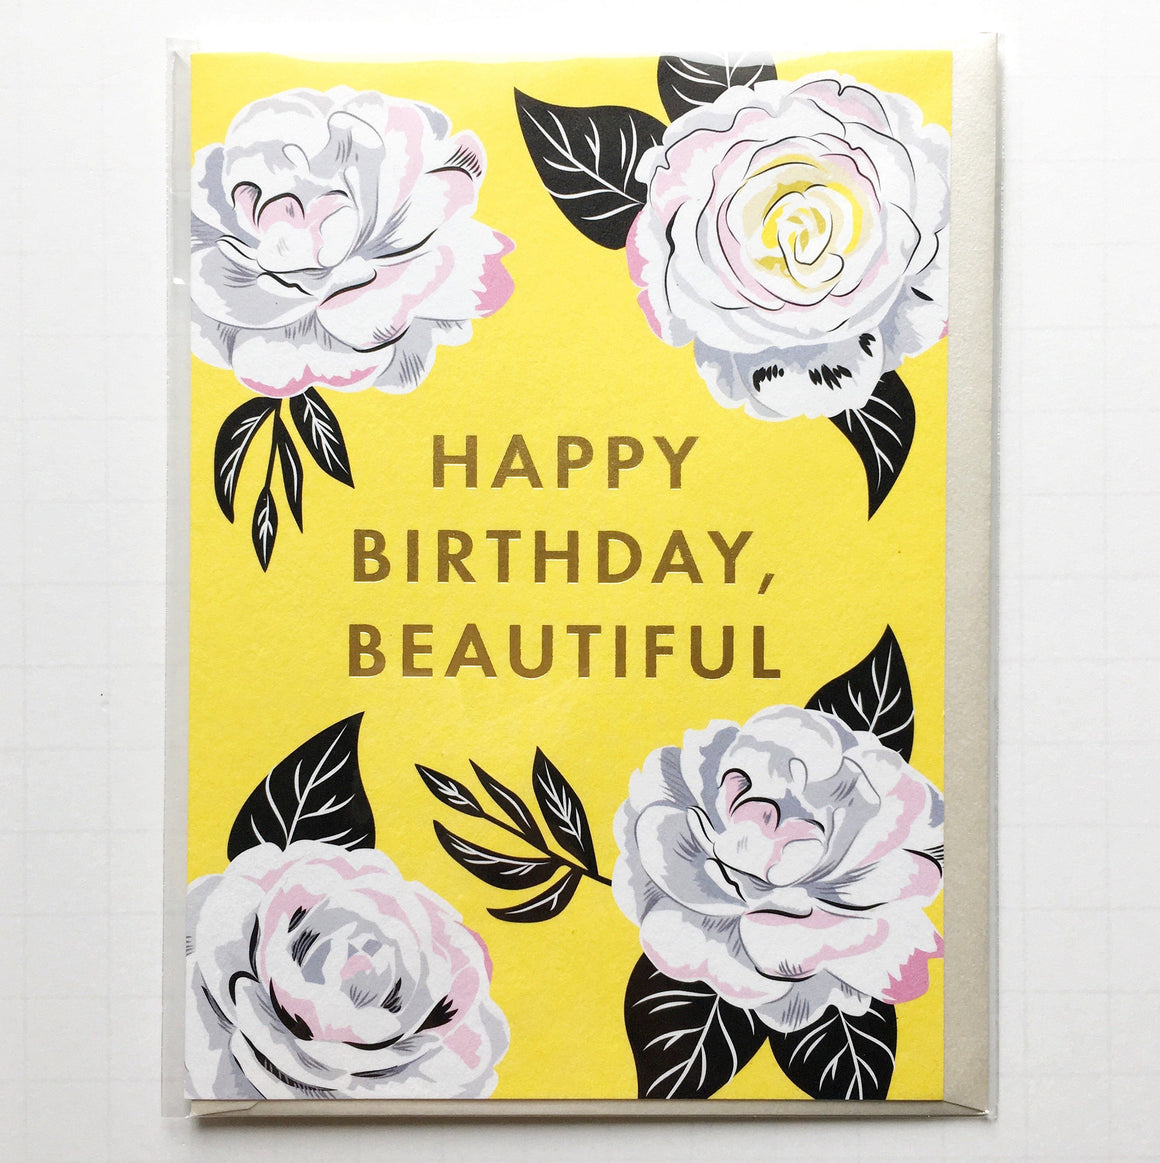 GIFT GIVING - GREETING CARD FLORAL HAPPY BIRTHDAY BEAUTIFUL